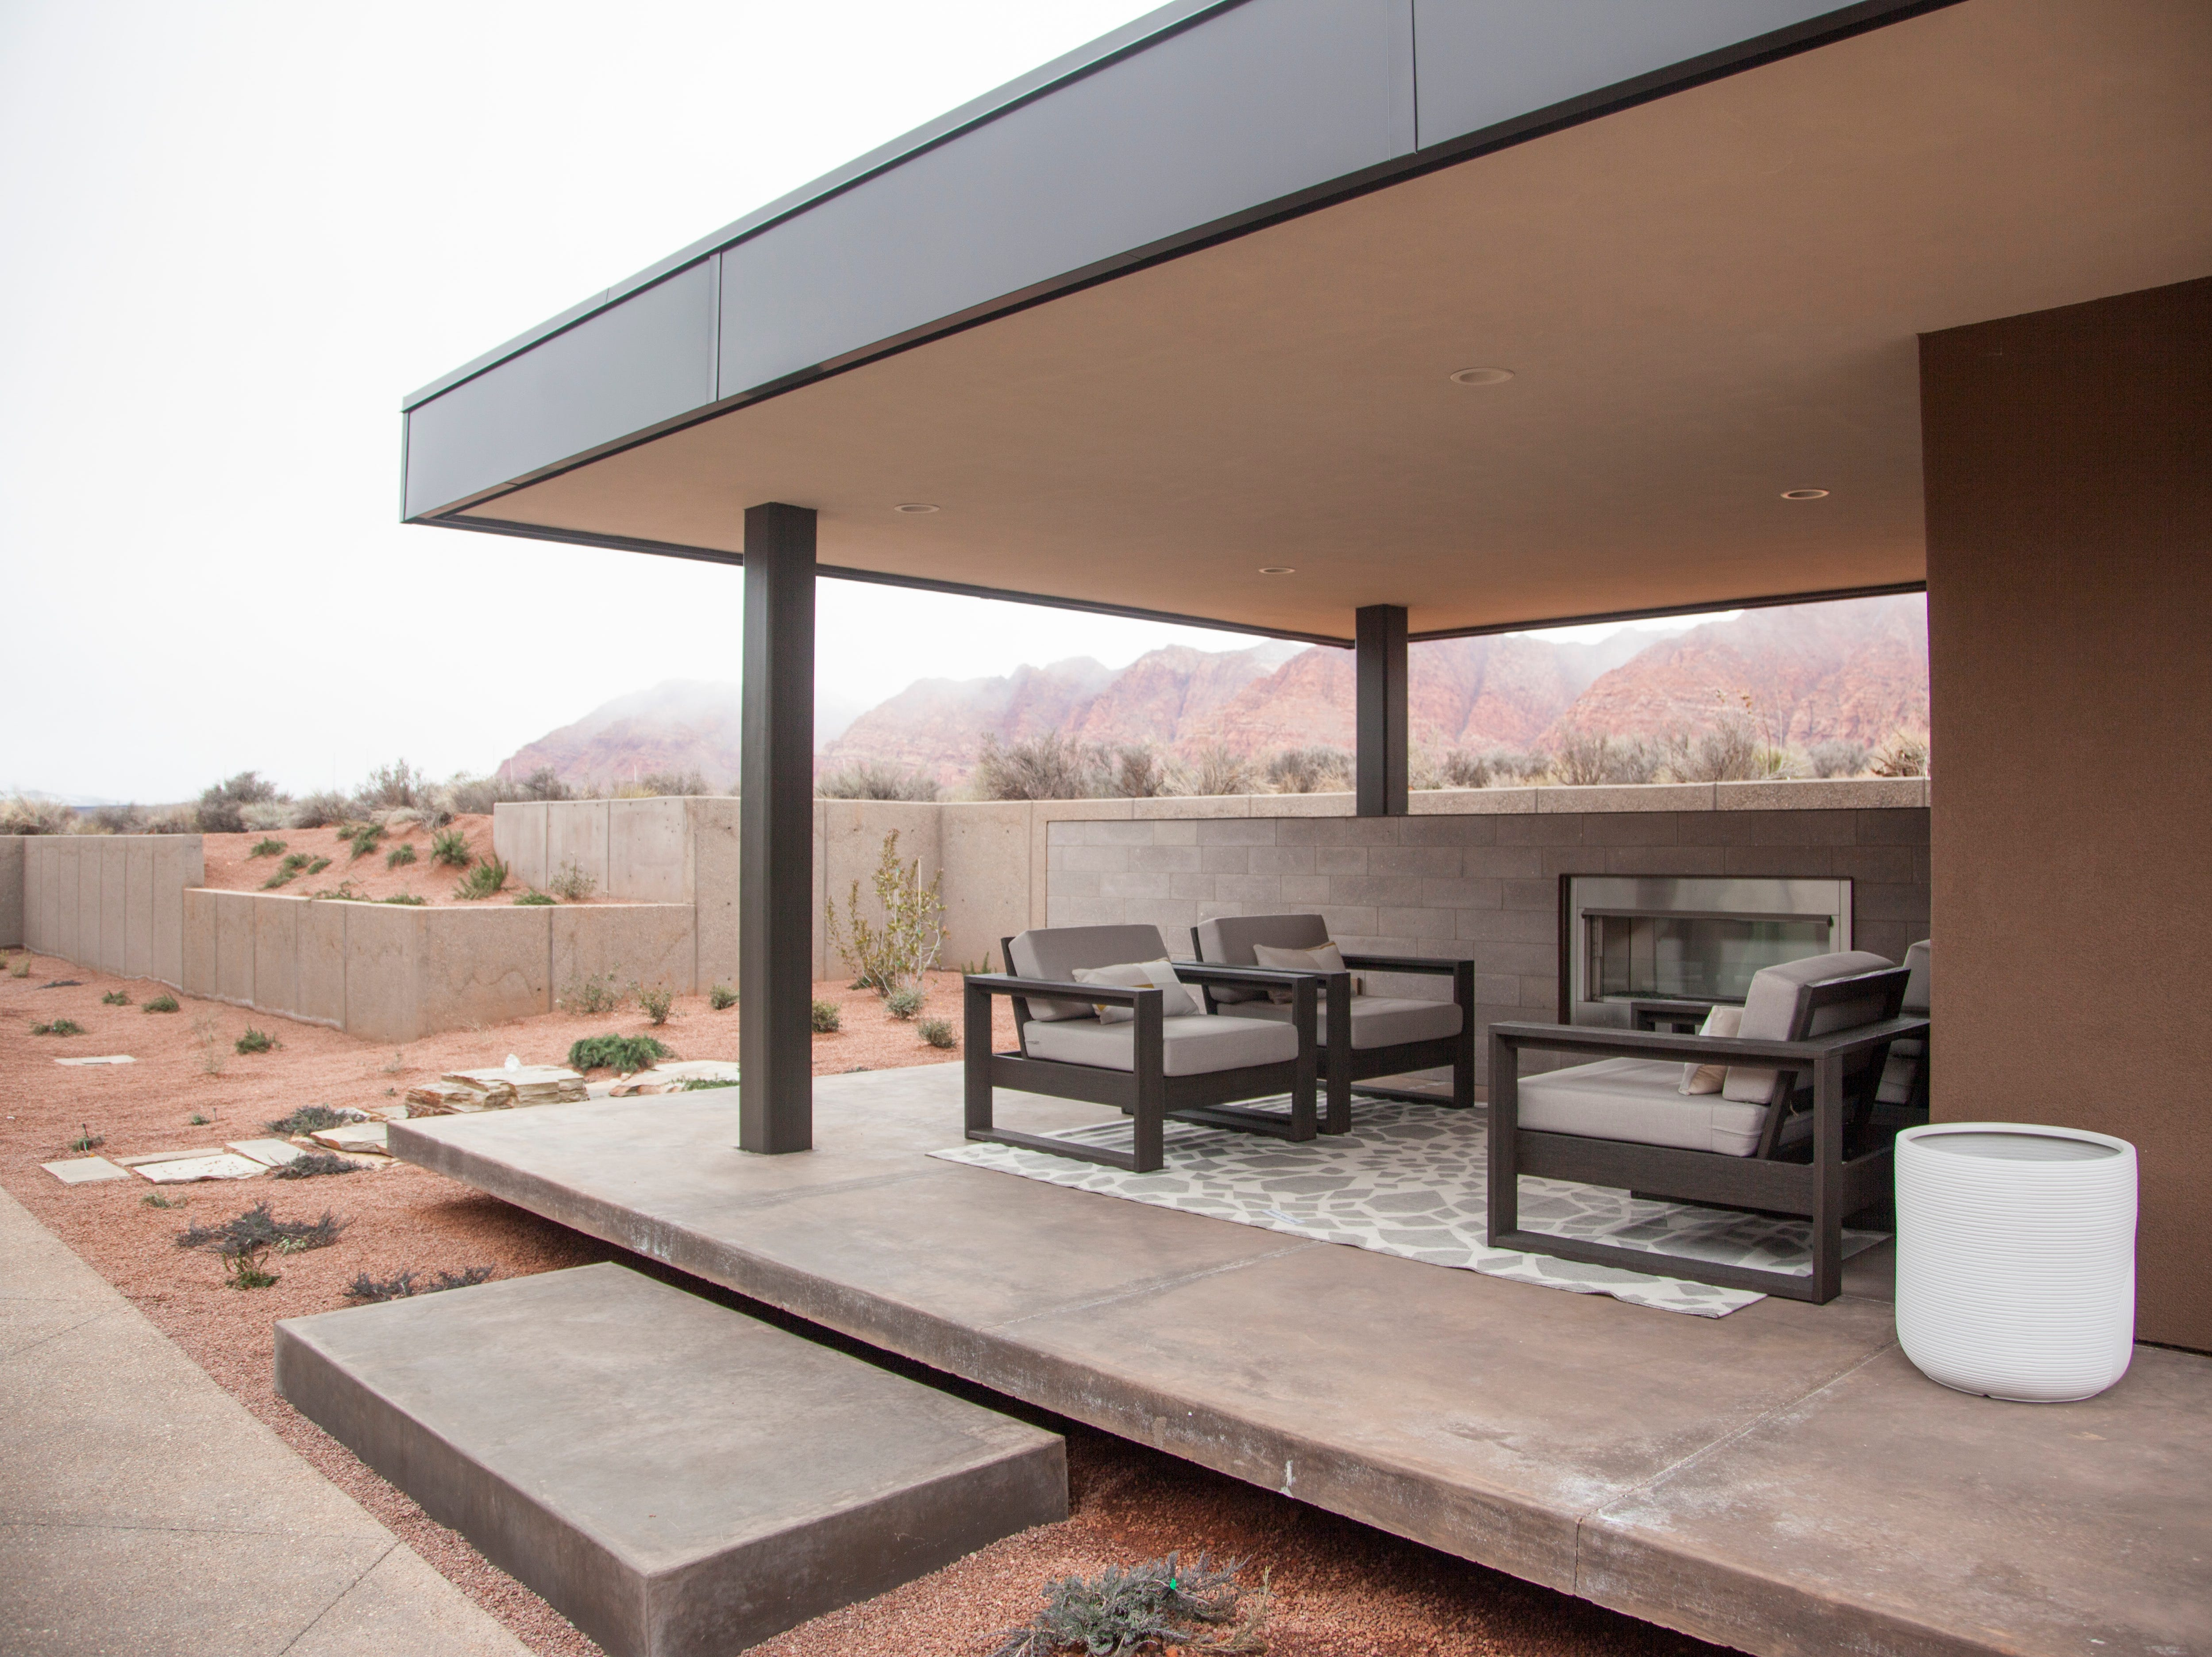 House number 17, Taviawk 9 in Kayenta, on the 2019 Parade of Homes Saturday, Feb. 23, 2019.